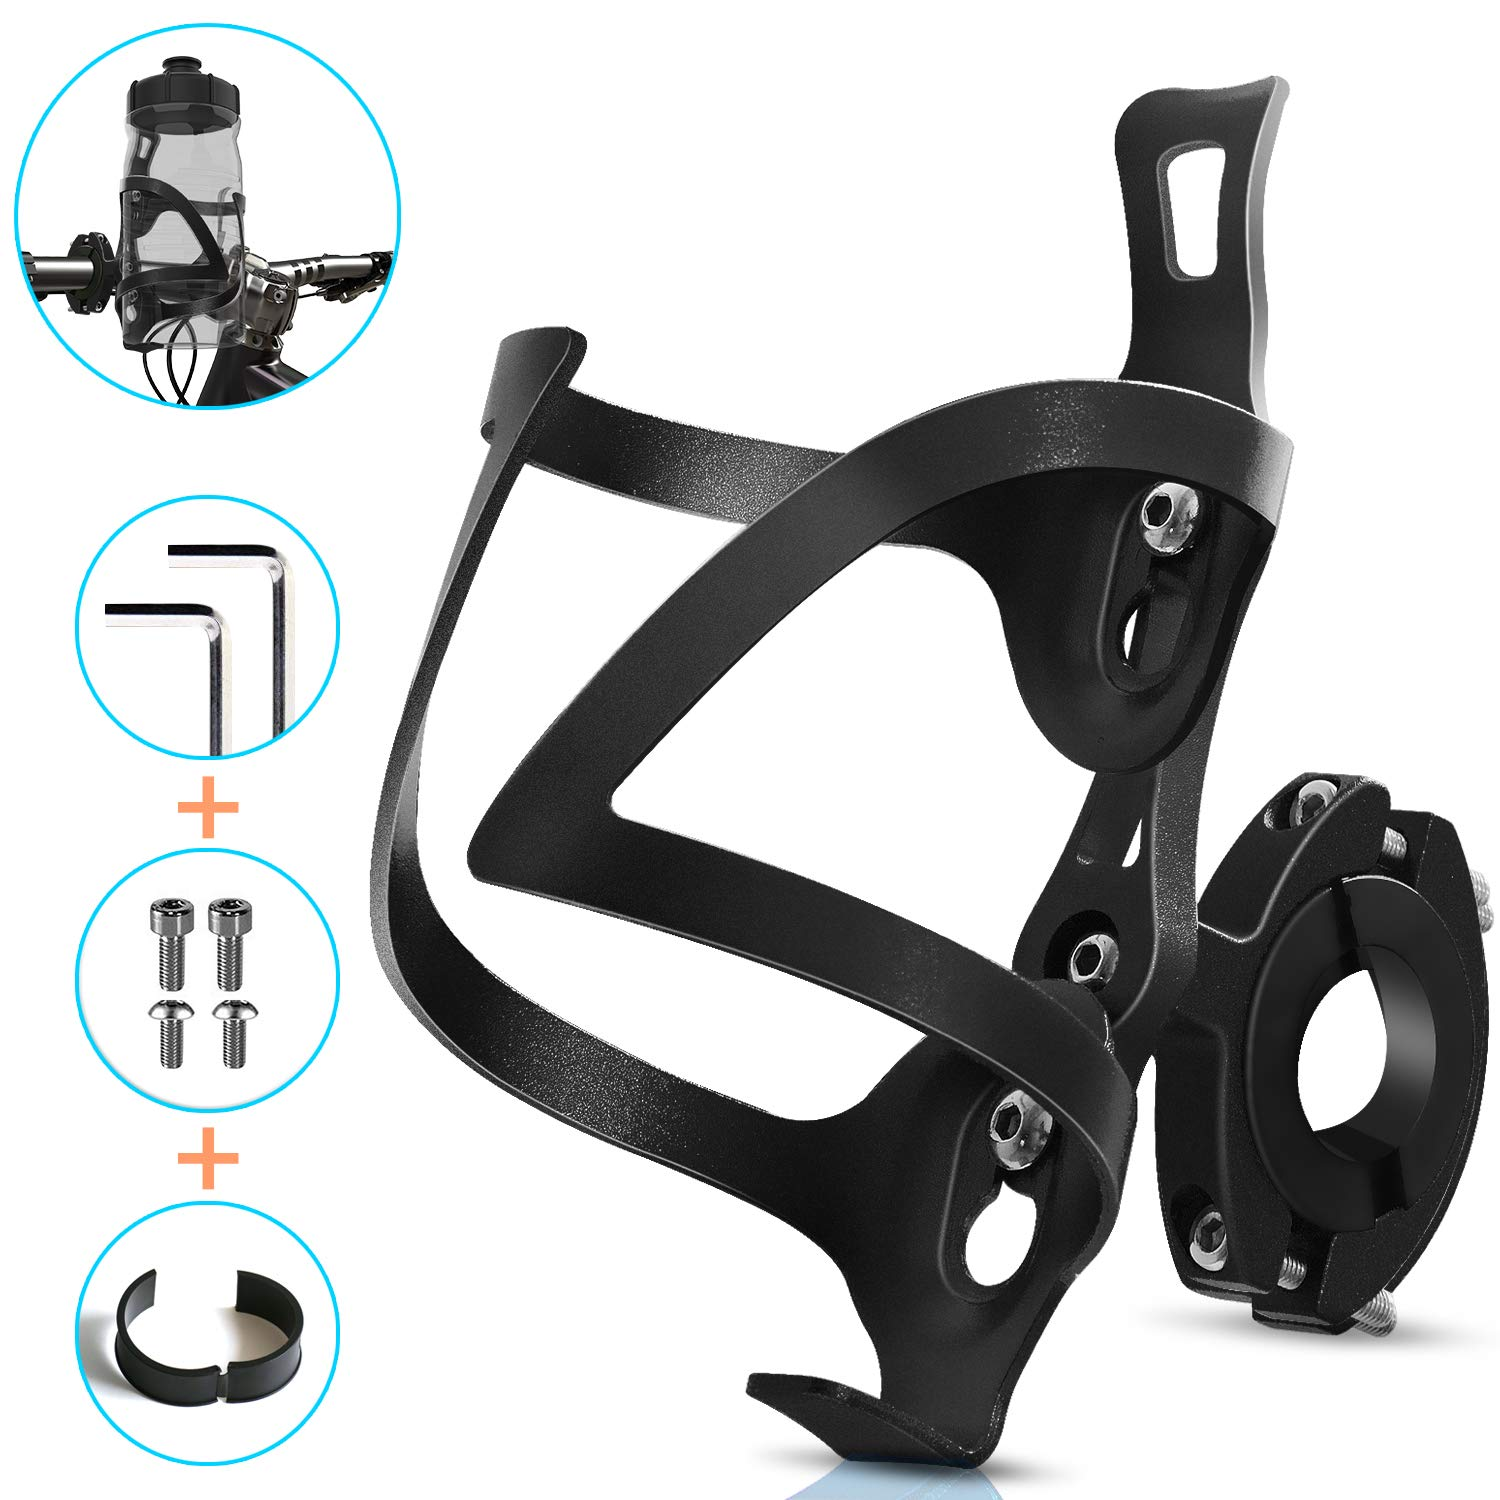 AIKATE Bike Cup Holder, Bicycle 2-in-1 Bottle Bracket, Aluminum Alloy Water Bottle Cages, Universal Rotation Cup Drink Holders for Bike Handlebars, Motorcycle, MTB, Boat, Walker, Wheelchair, Stroller